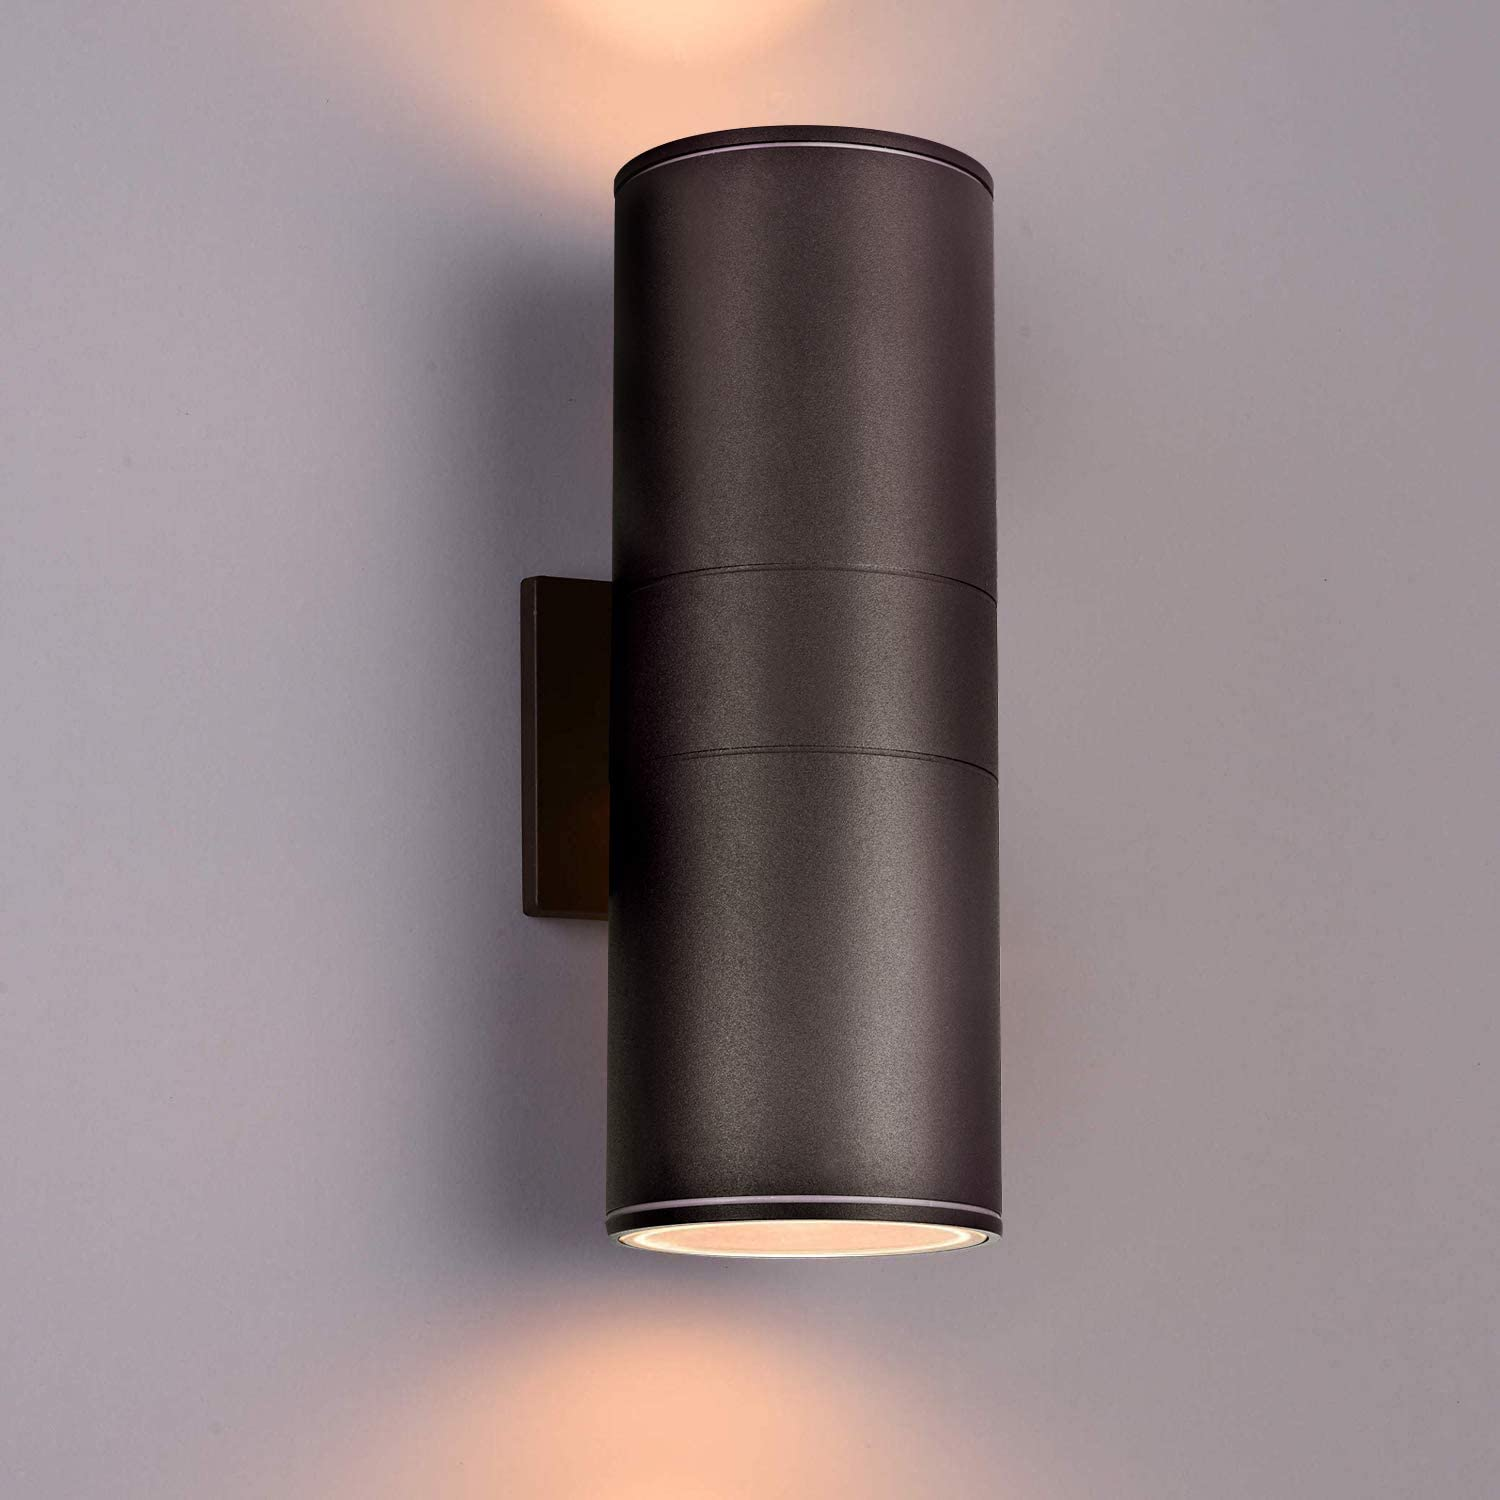 Outdoor Wall Light, Bling Dusk to Dawn Exterior Lighting in 2 Lights - ETL Listed,Aluminum Waterproof Wall Mount Sconce Cylinder Design - Up Down Light Fixture for Porch, Backyard and Patio